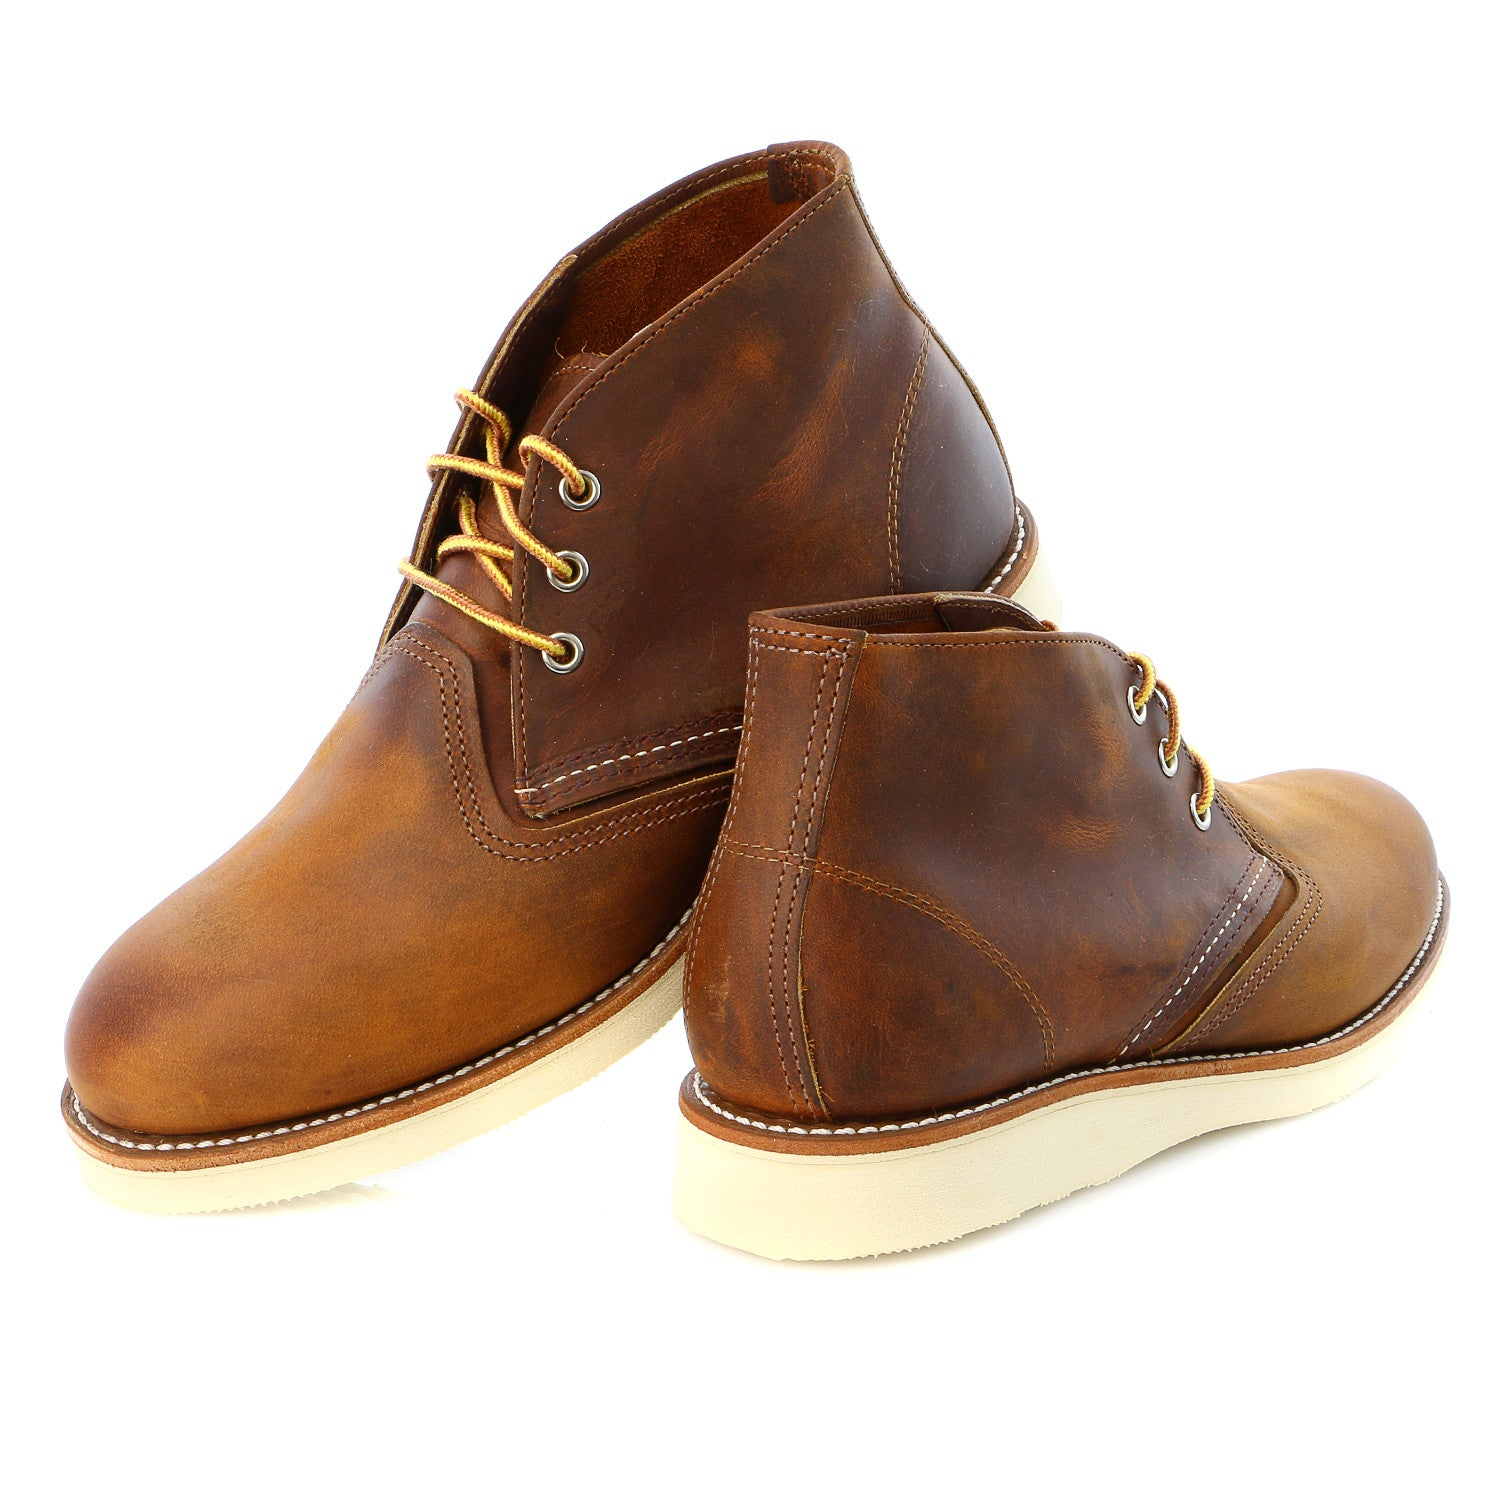 e3e26a9b3918c Red Wing Heritage Men s Classic Work Leather Chukka Boot - Mens ...